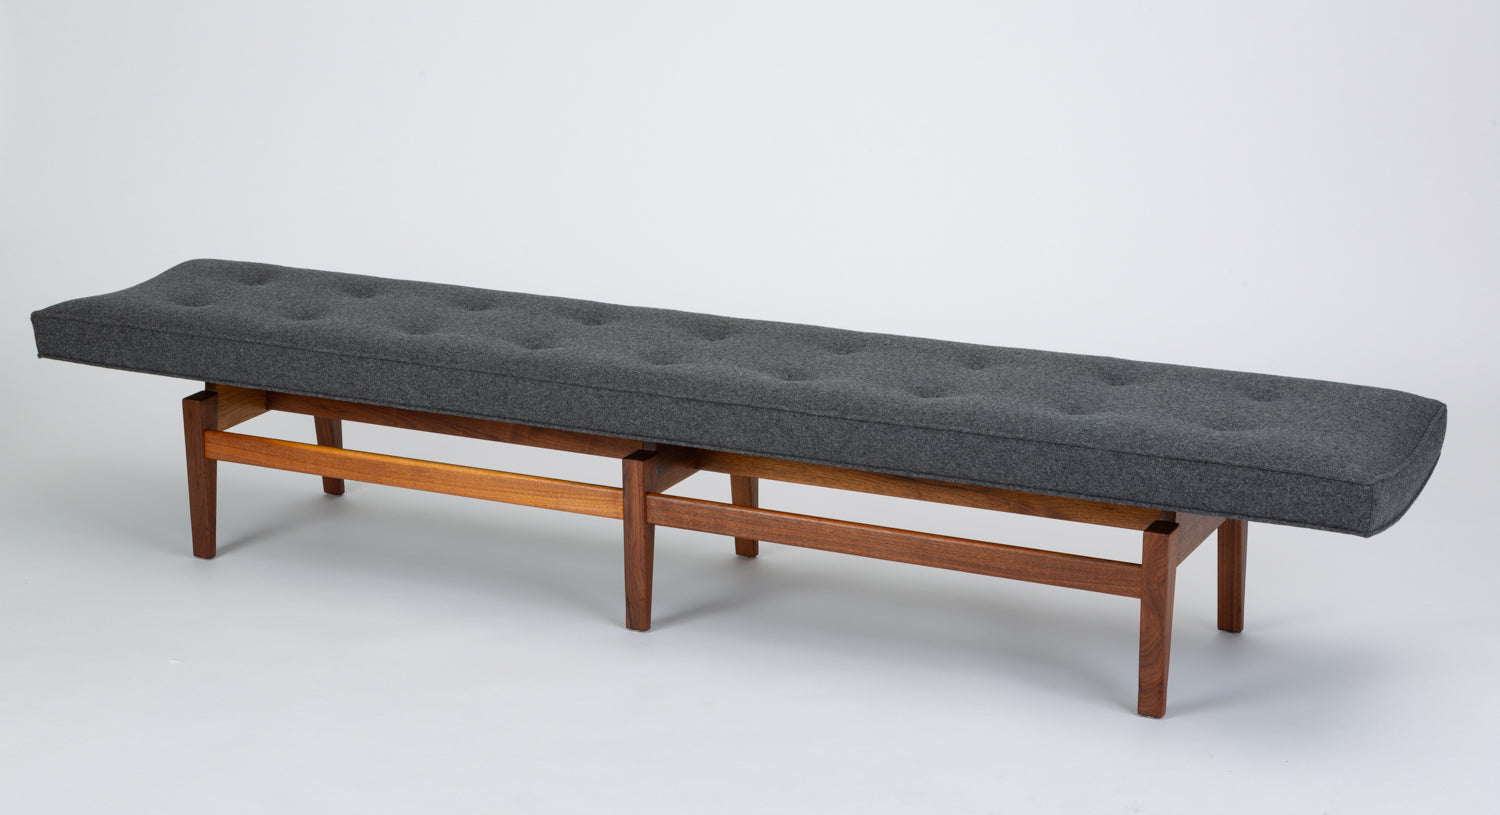 Long Upholstered Bench by Jens Risom